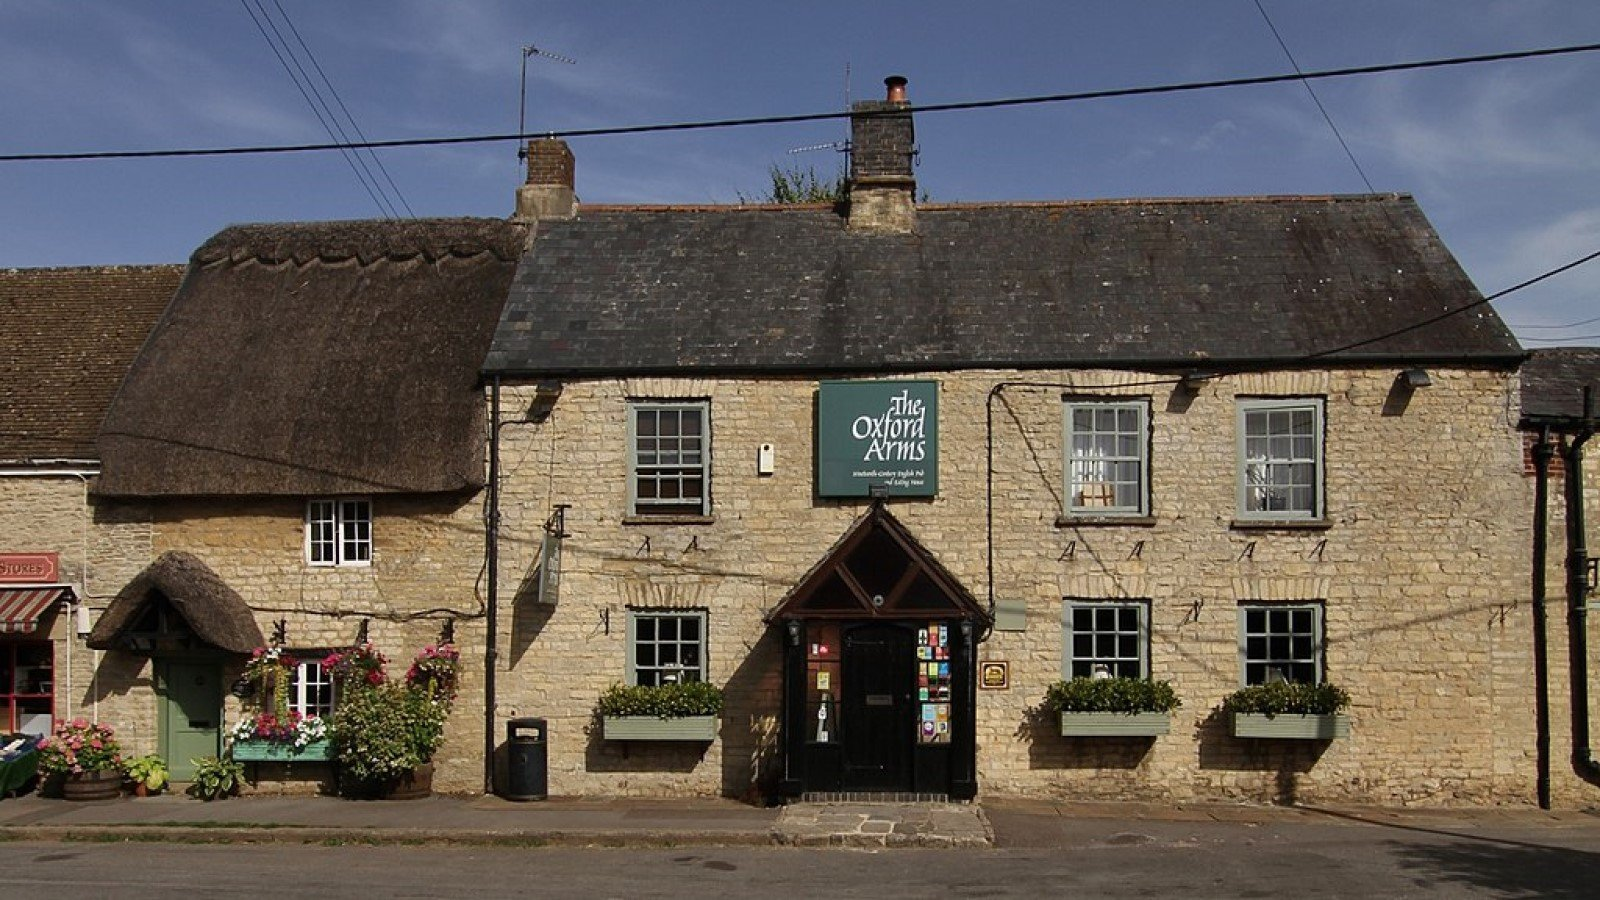 The Oxford Arms - Gastropub - Kirtlington, Kidlington, Oxfordshire